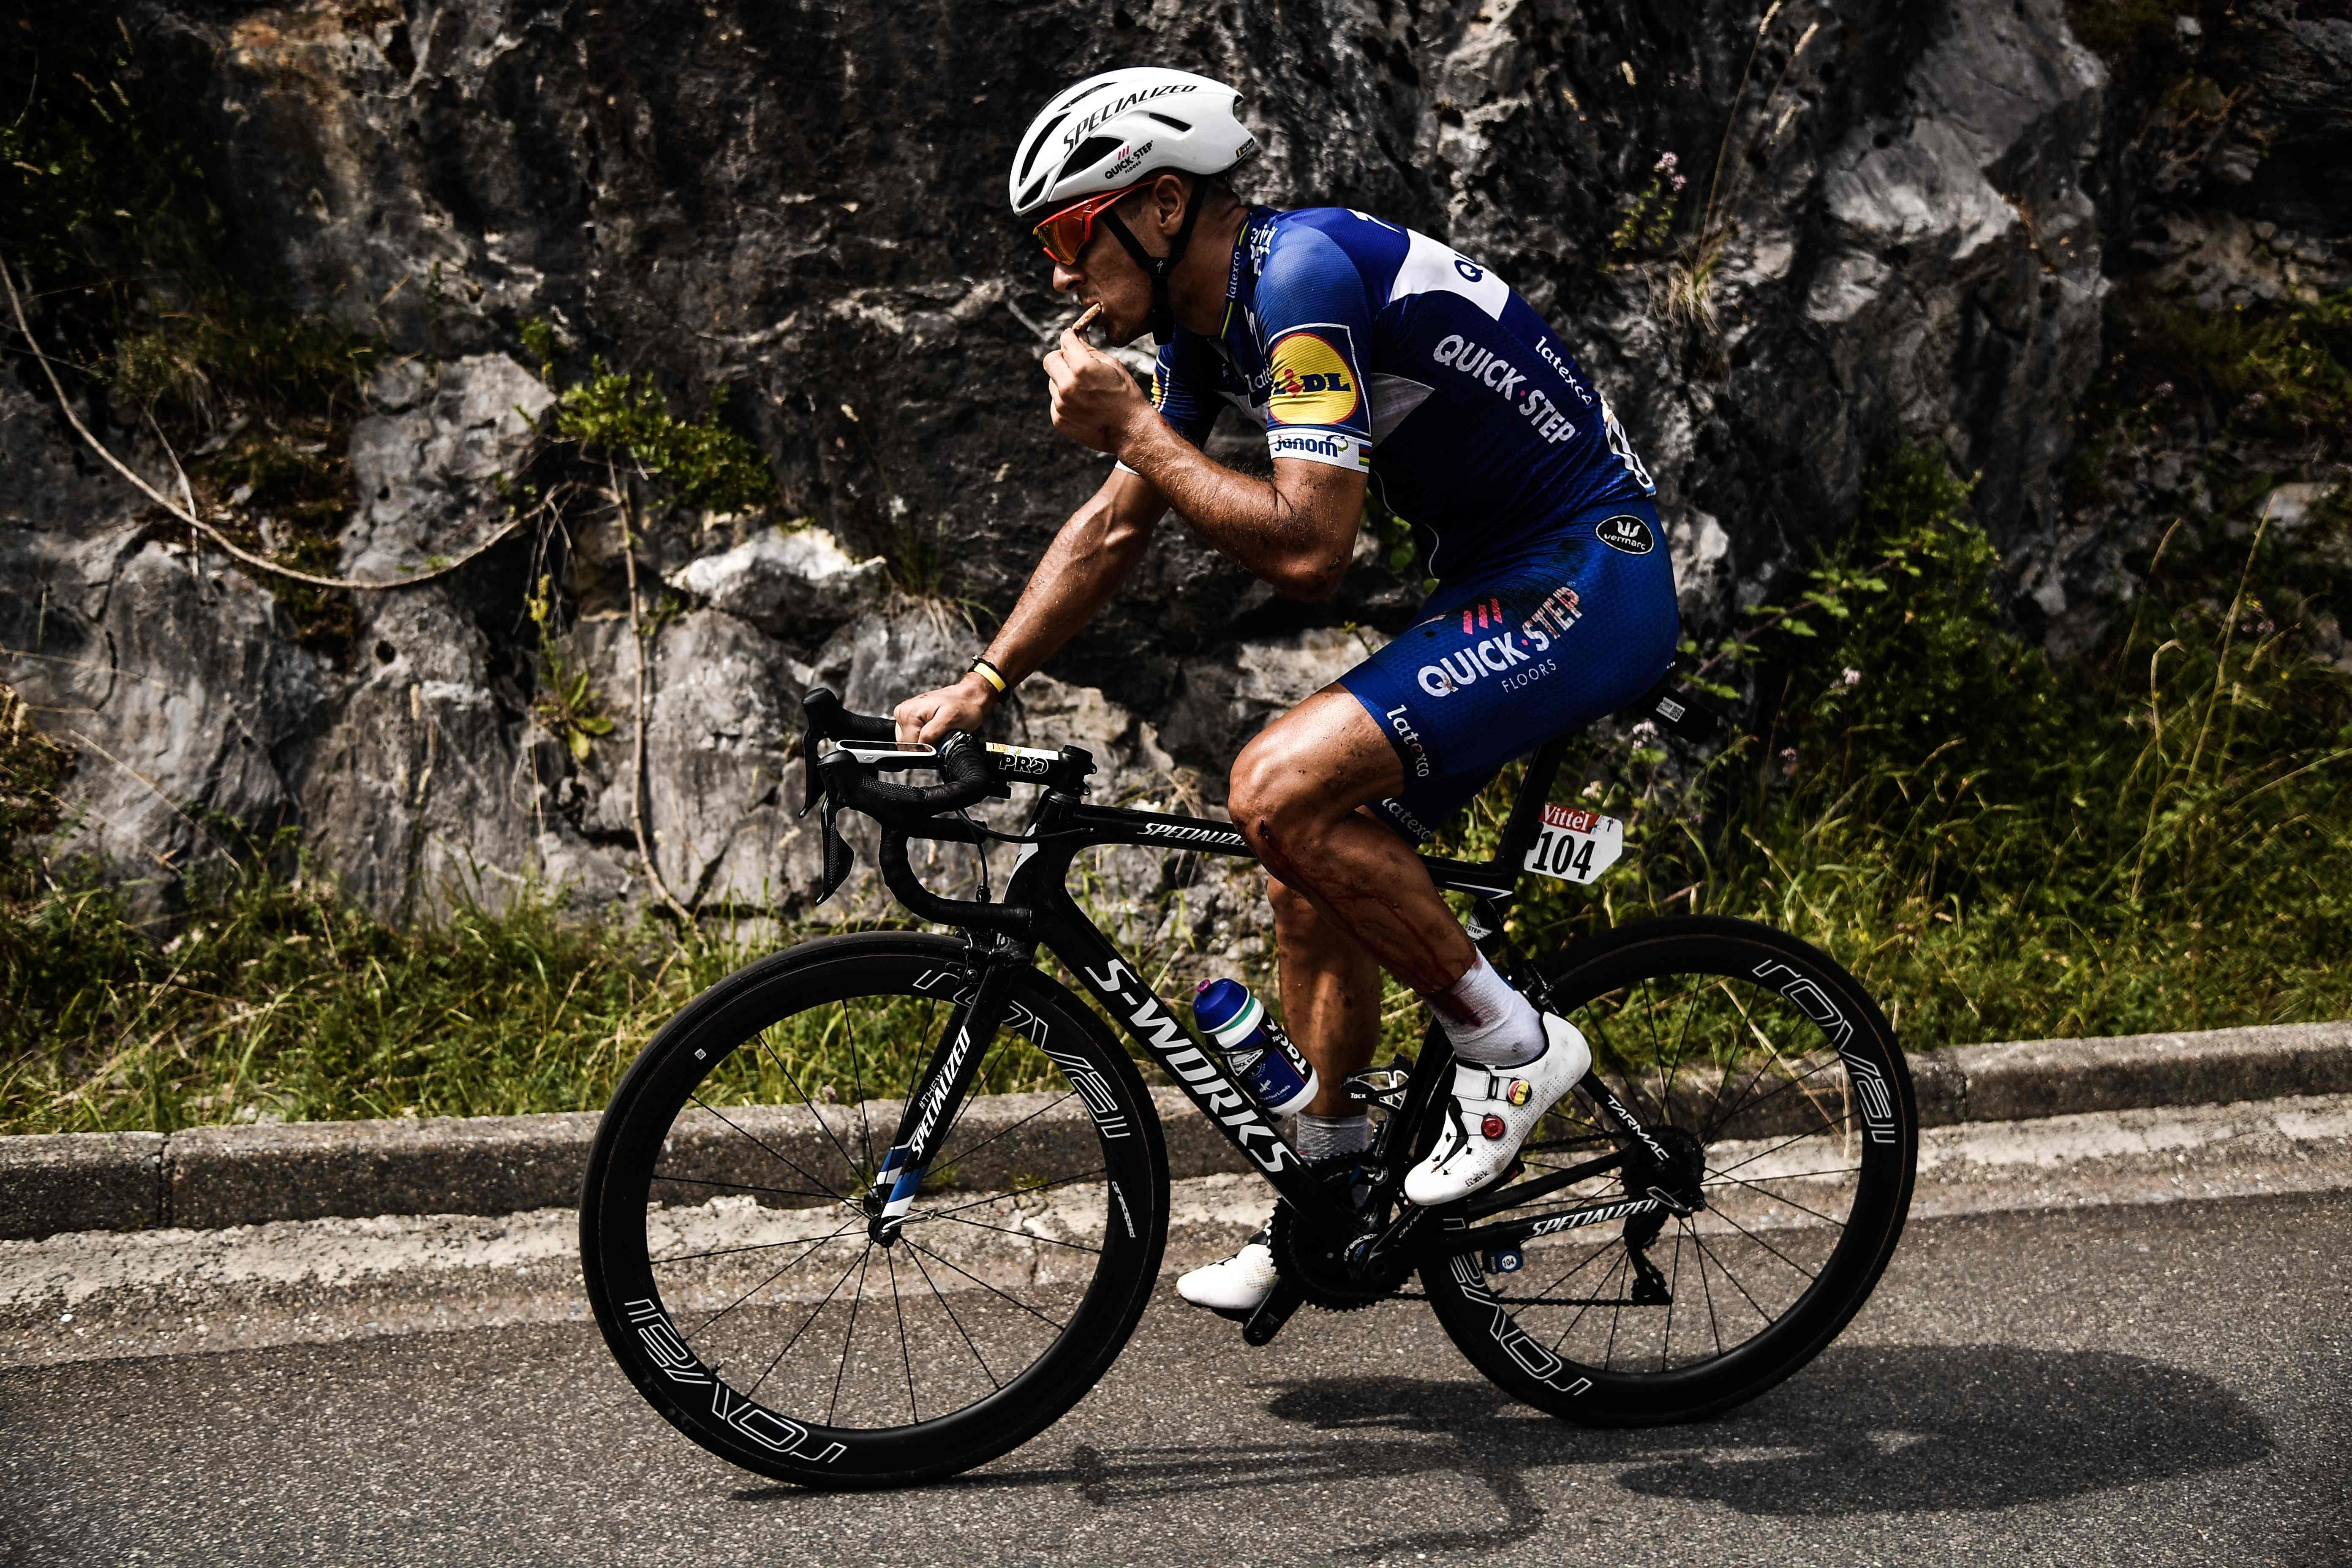 Philippe Gilbert tucks into a snack after he managed to carry on racing despite his fall